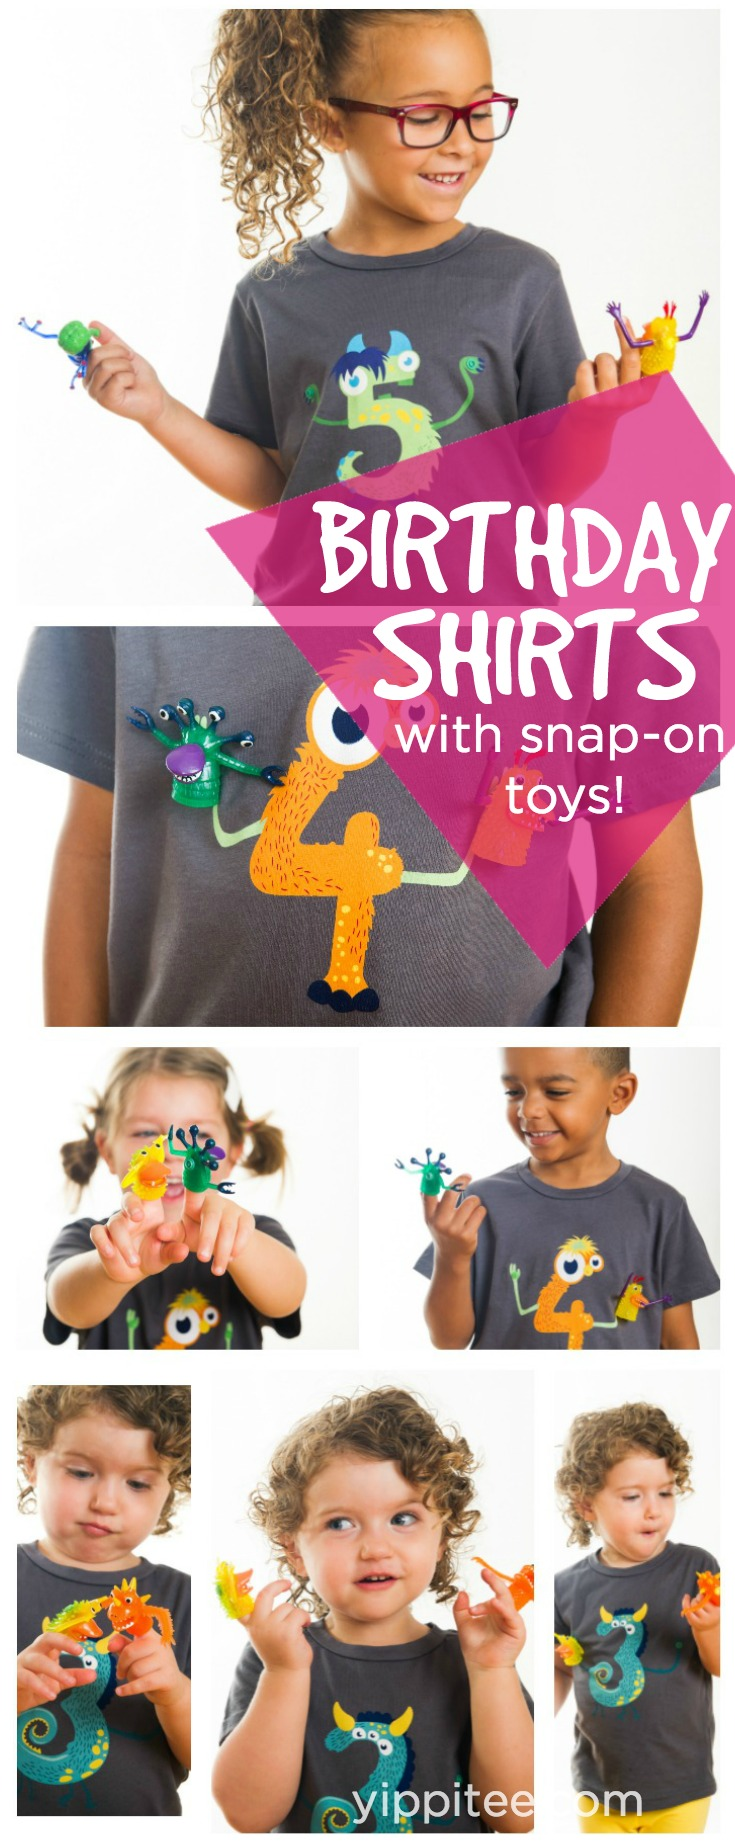 Adorable birthday shirts for kids with toys that snap on and off!